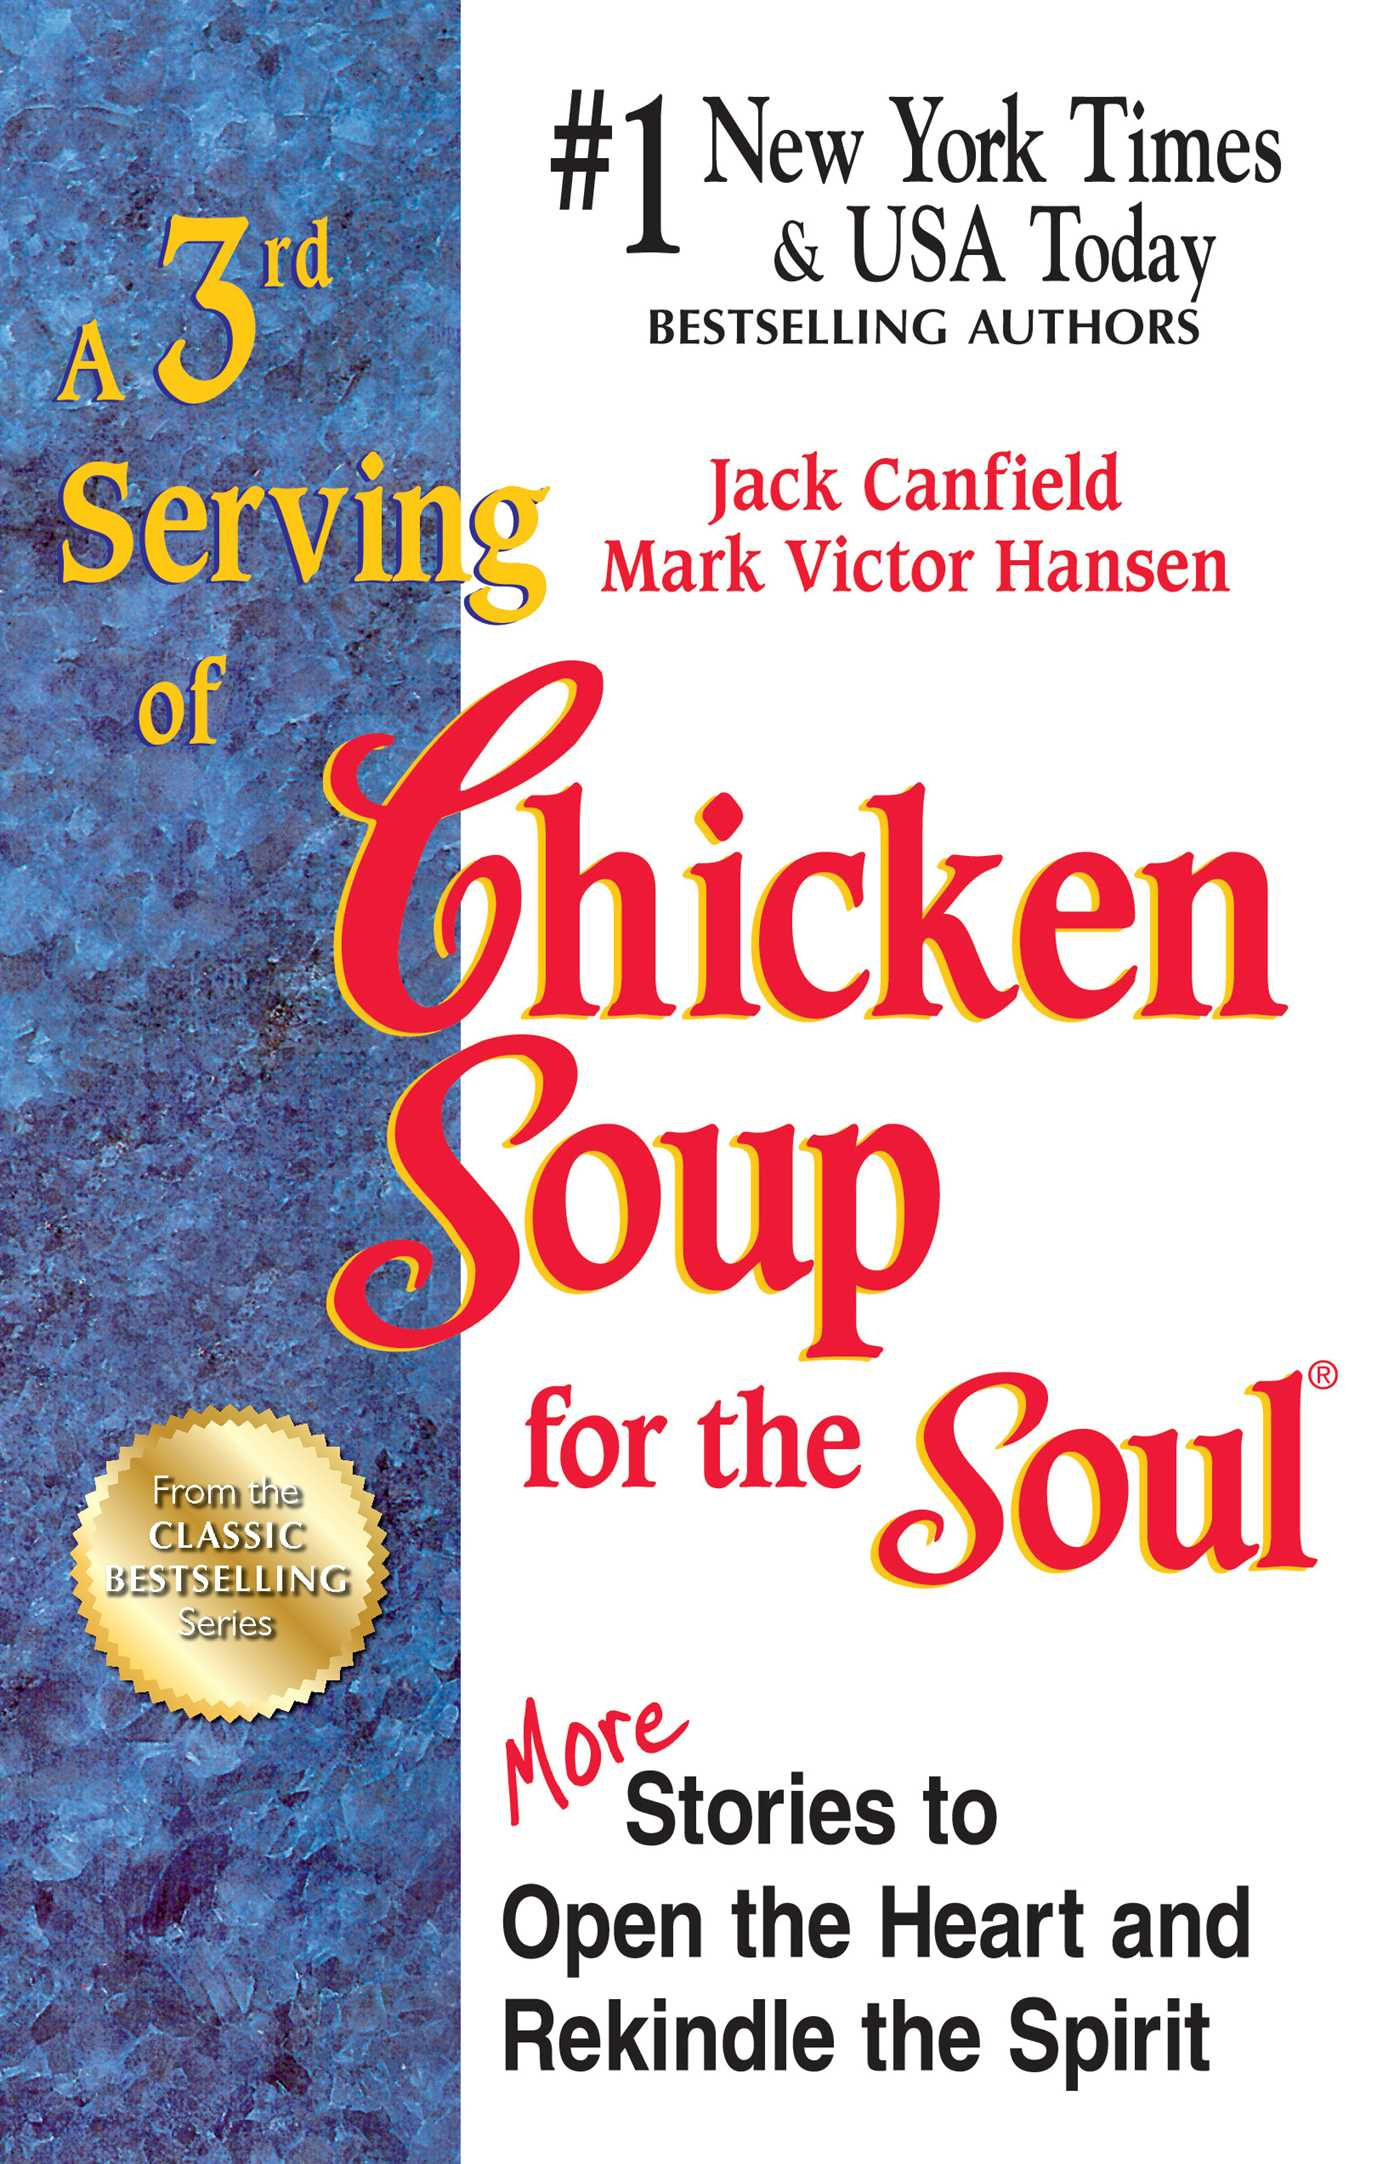 3rd-serving-of-chicken-soup-for-the-soul-9781623610371_hr